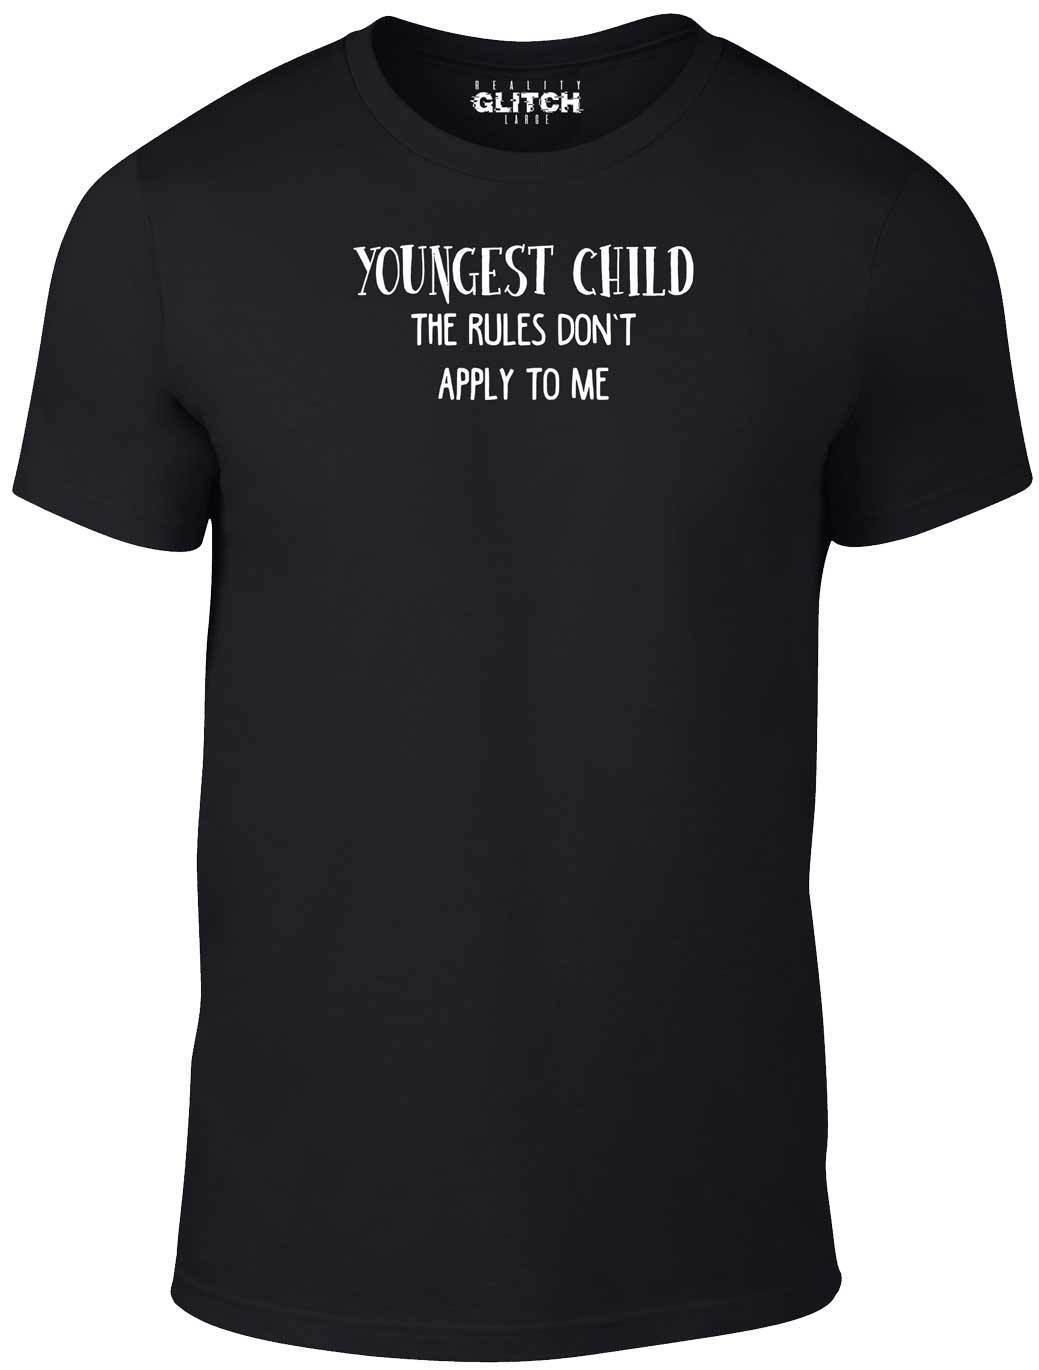 ffbbec2e7 Kids Youngest Child T Shirt Funny Childrens Tshirt Family Rules Brother  Sister Cool Shirts Online All Shirts From Linnan00009, $14.67| DHgate.Com